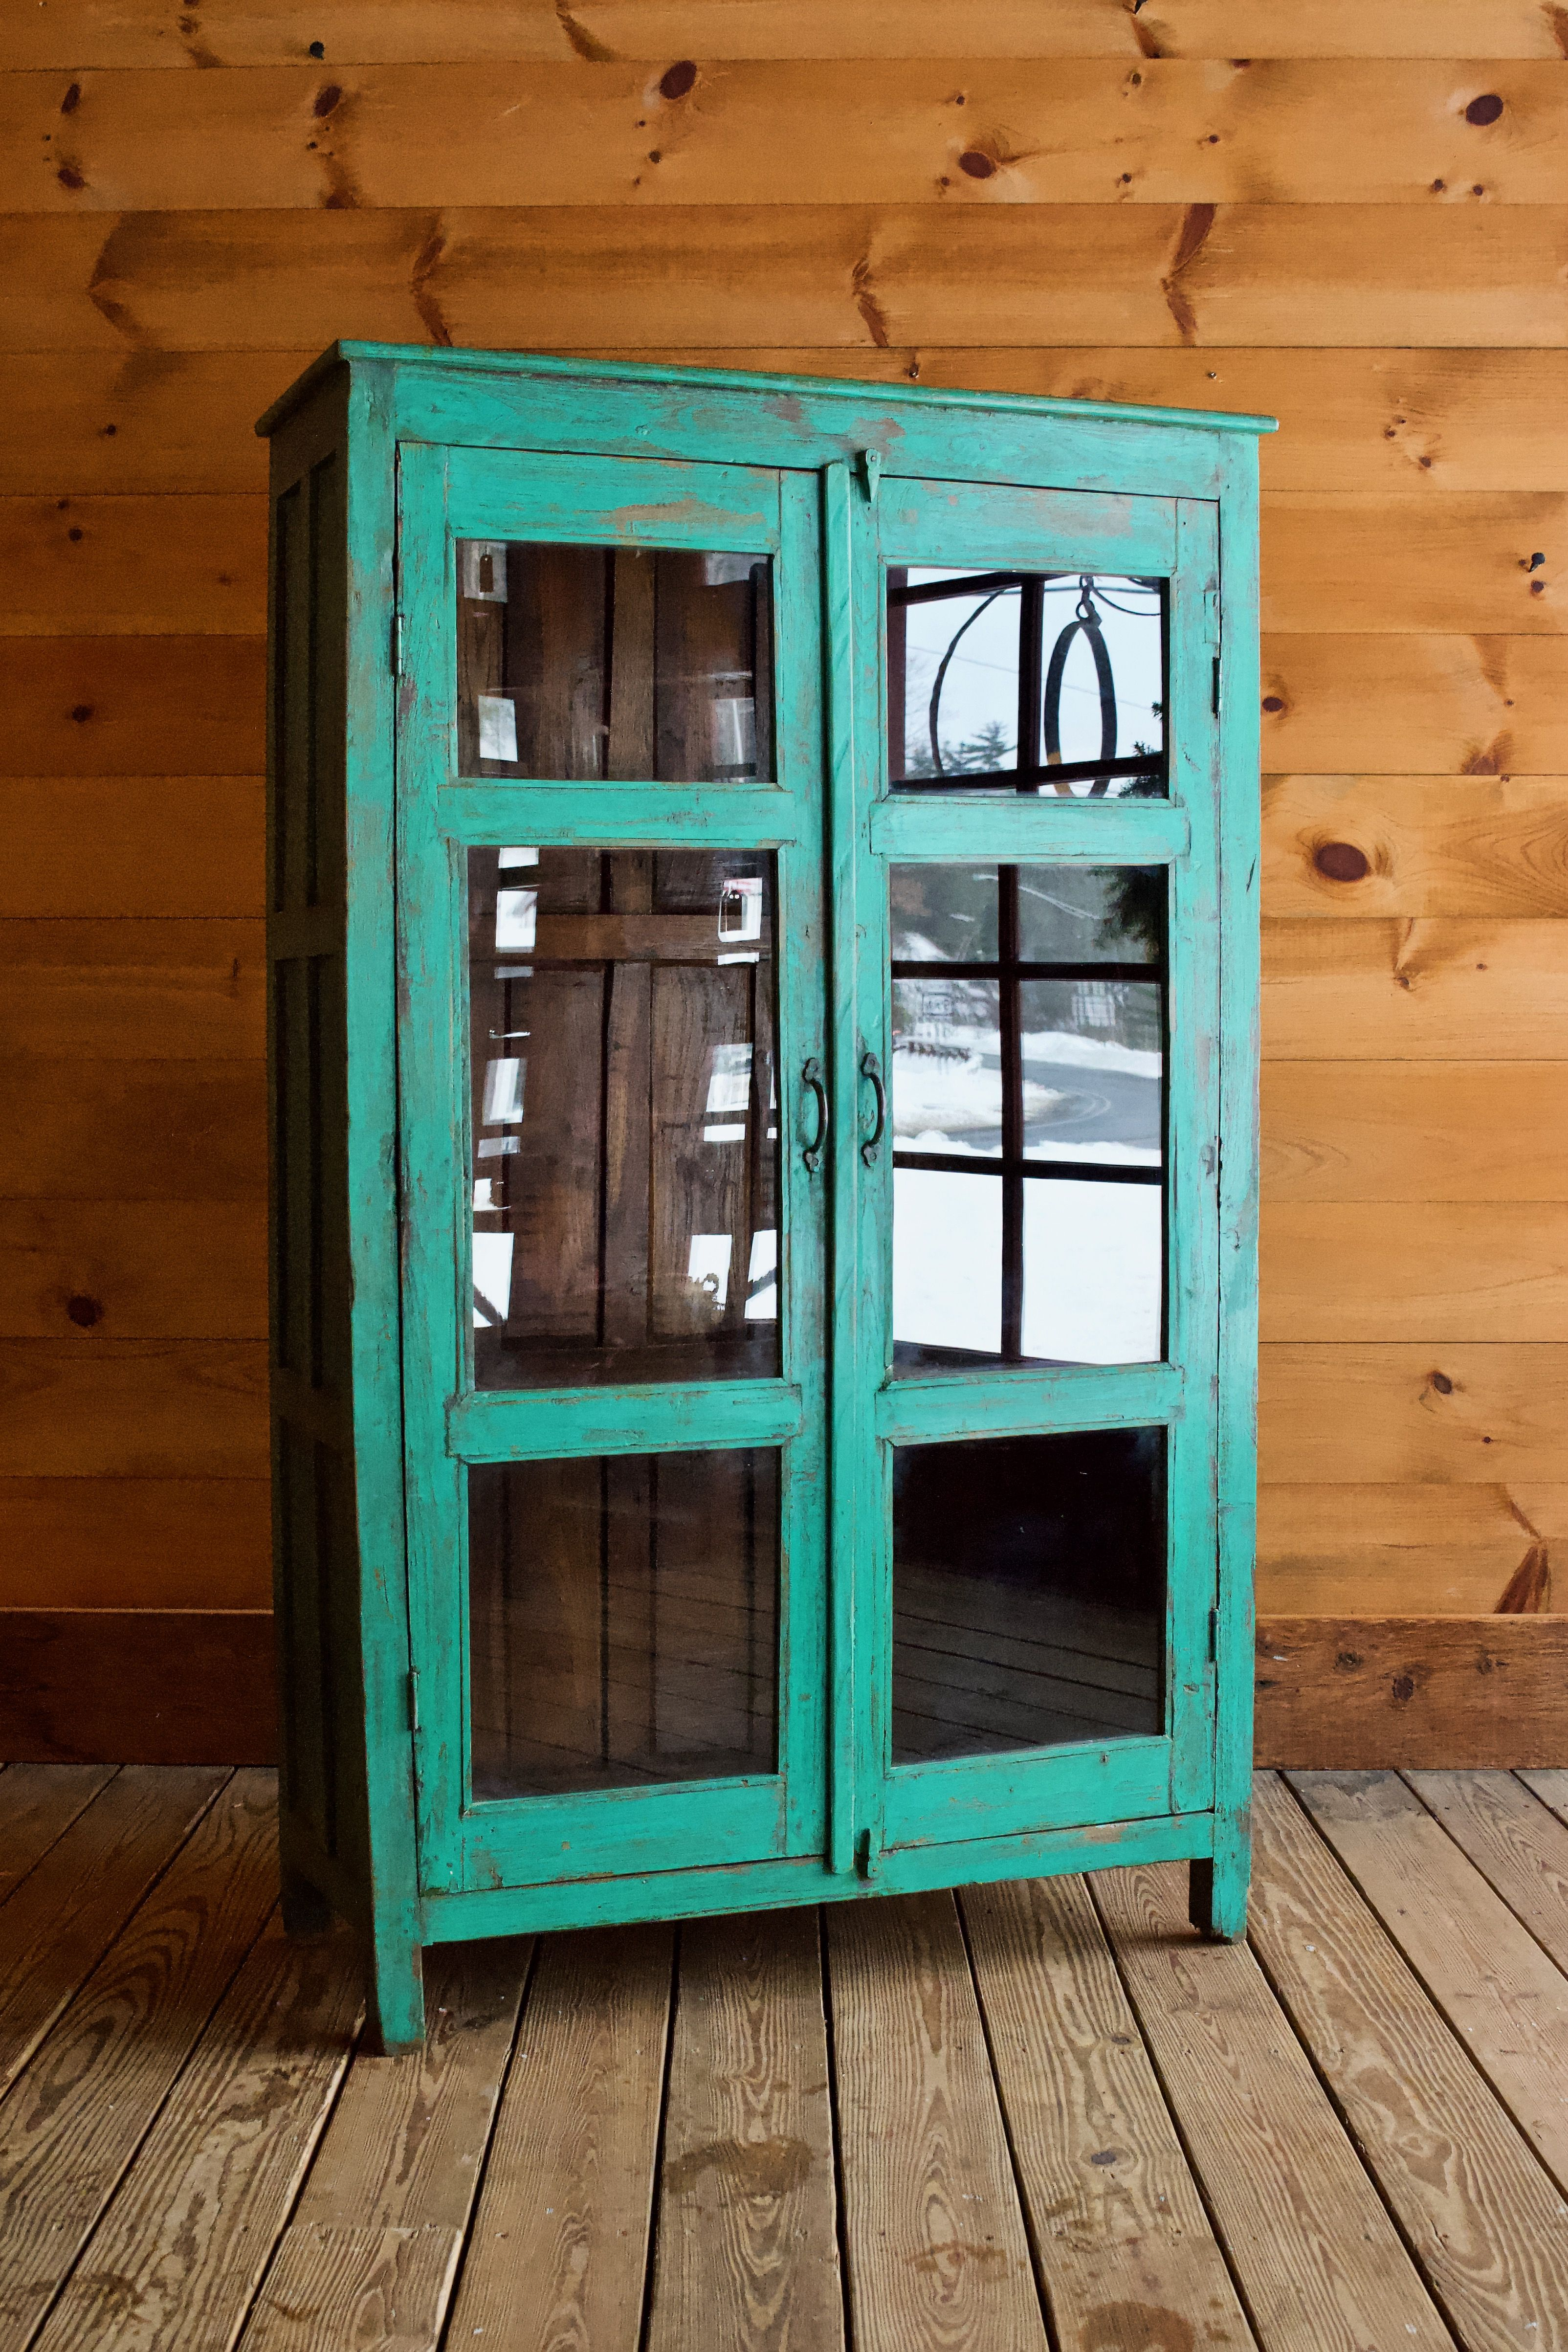 Vintage Rustic Painted Cupboard Painted Cupboards Rustic Furniture Stores Transitional Living Room Furniture